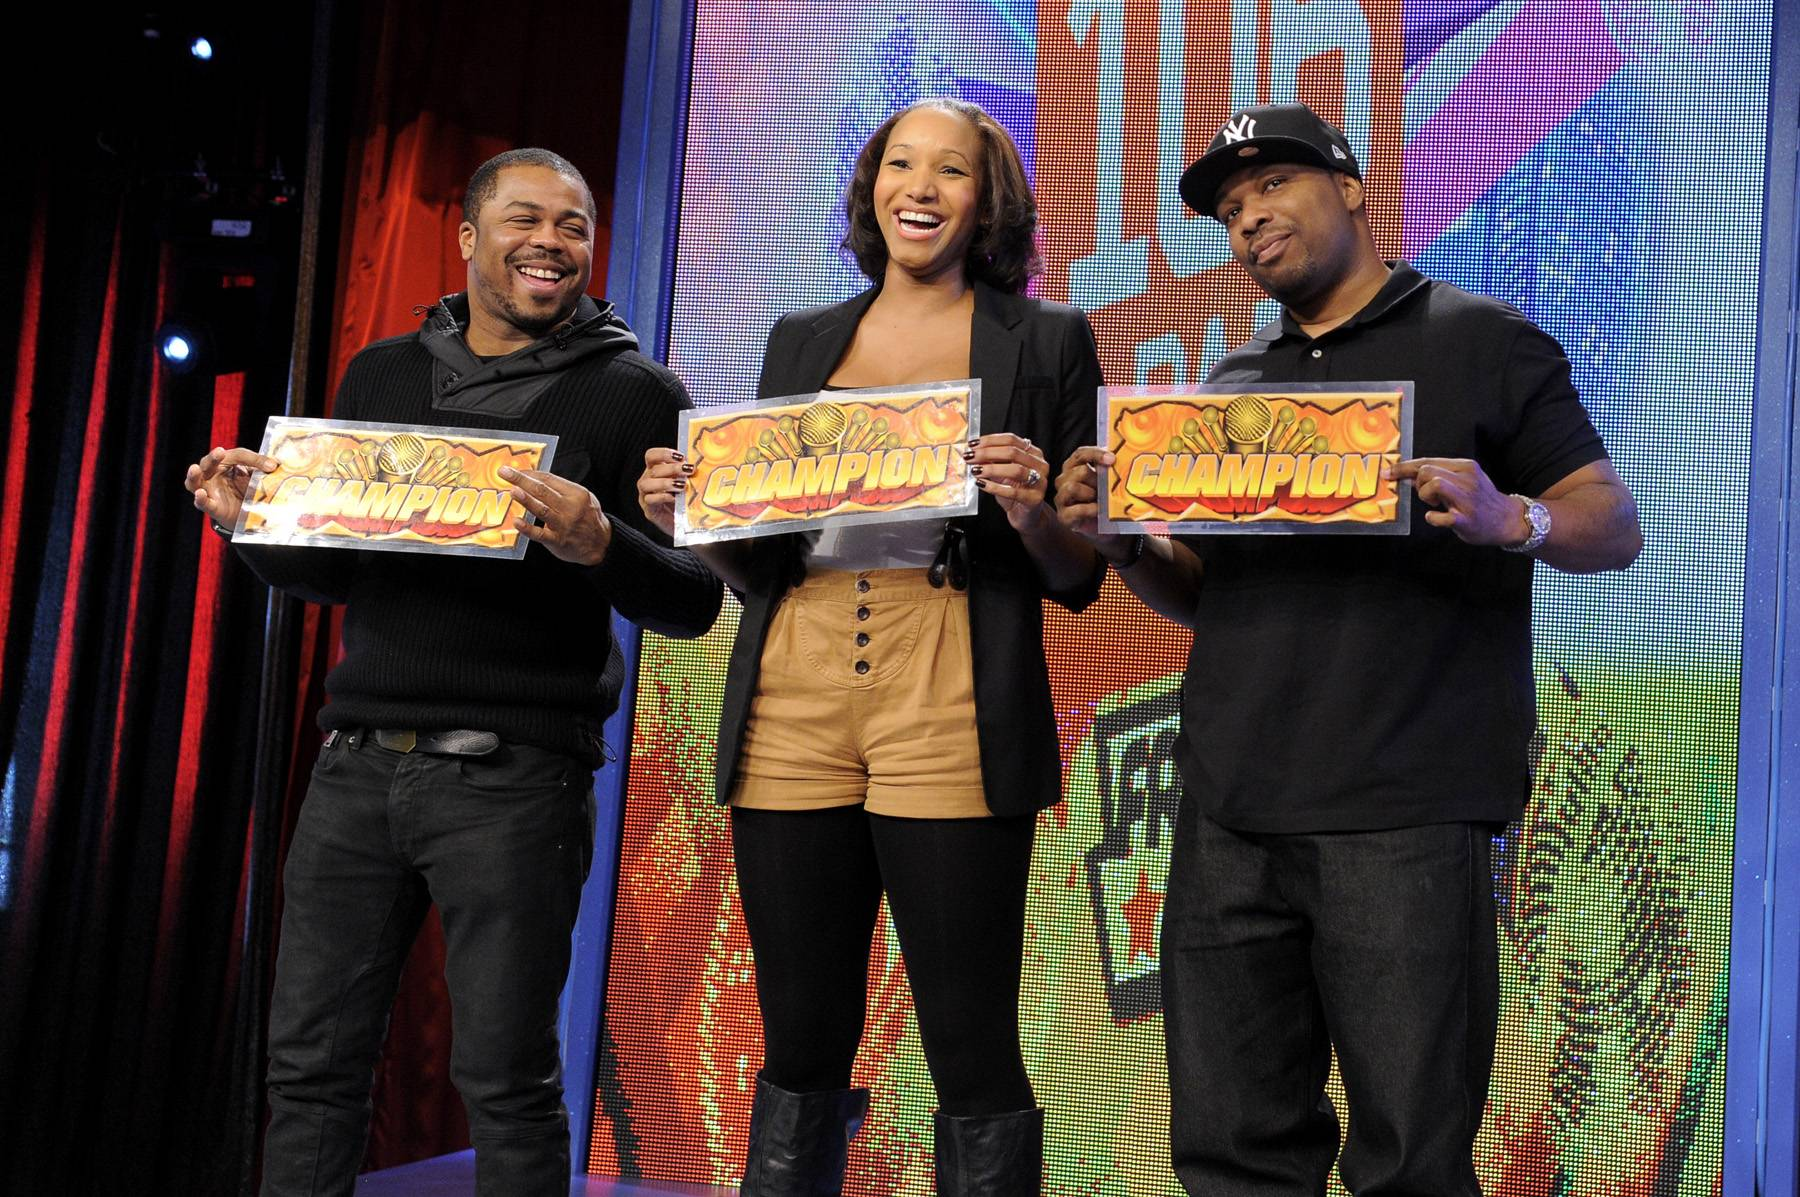 Give It to the Champ - Freestyle Friday judges Just Blaze, Amber McKynzie and DJ Scratch vote for the champion at 106 & Park, January 20, 2012. (Photo: John Ricard / BET)